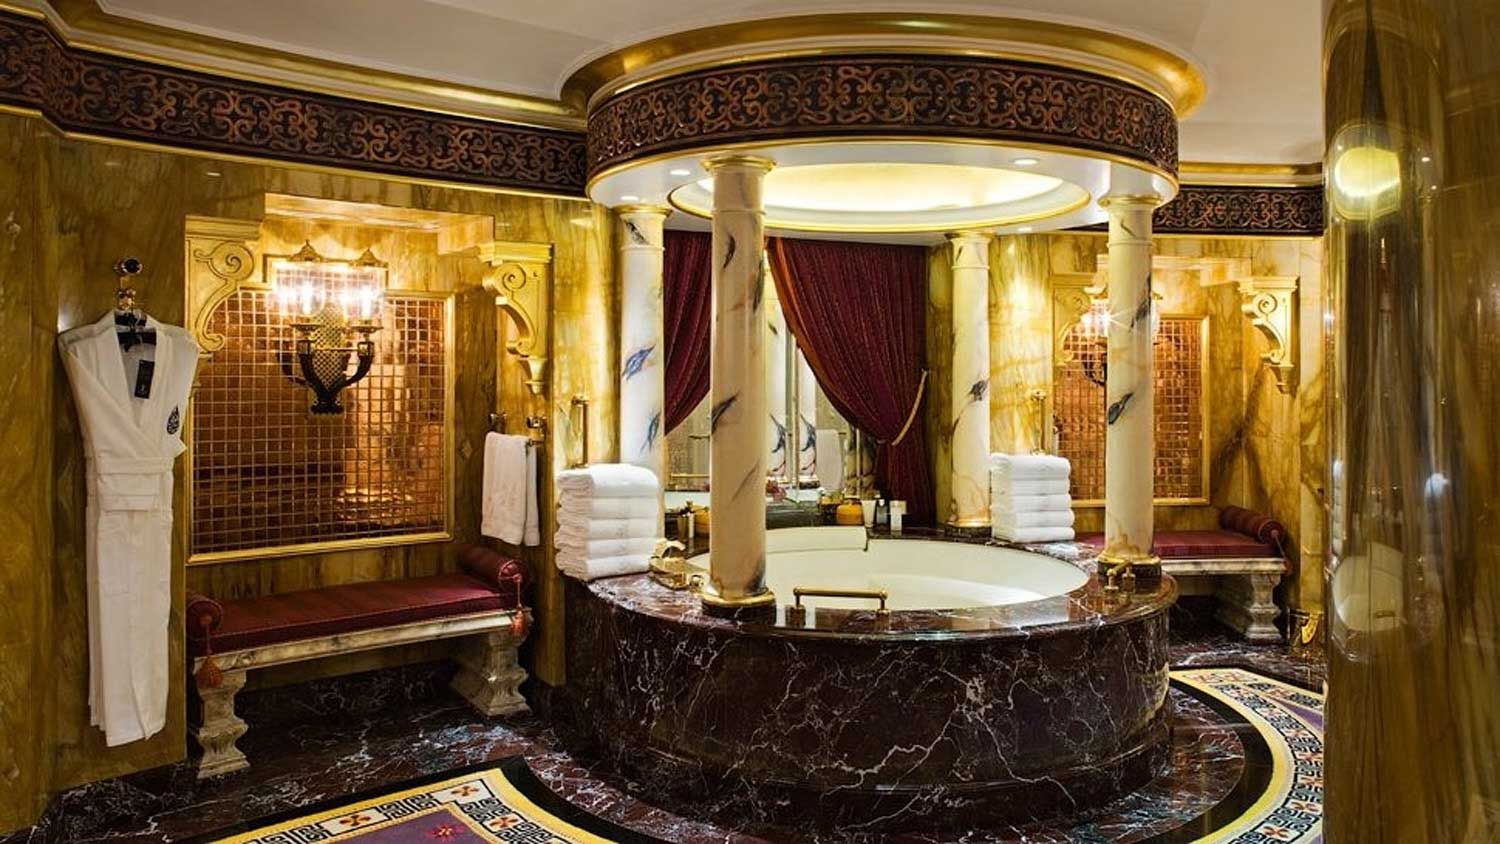 Luxury Gold Bathroom Decorating Ideas With Jacuzzi Design Indoor Design And  Romantic Red Curtains Ideas Also